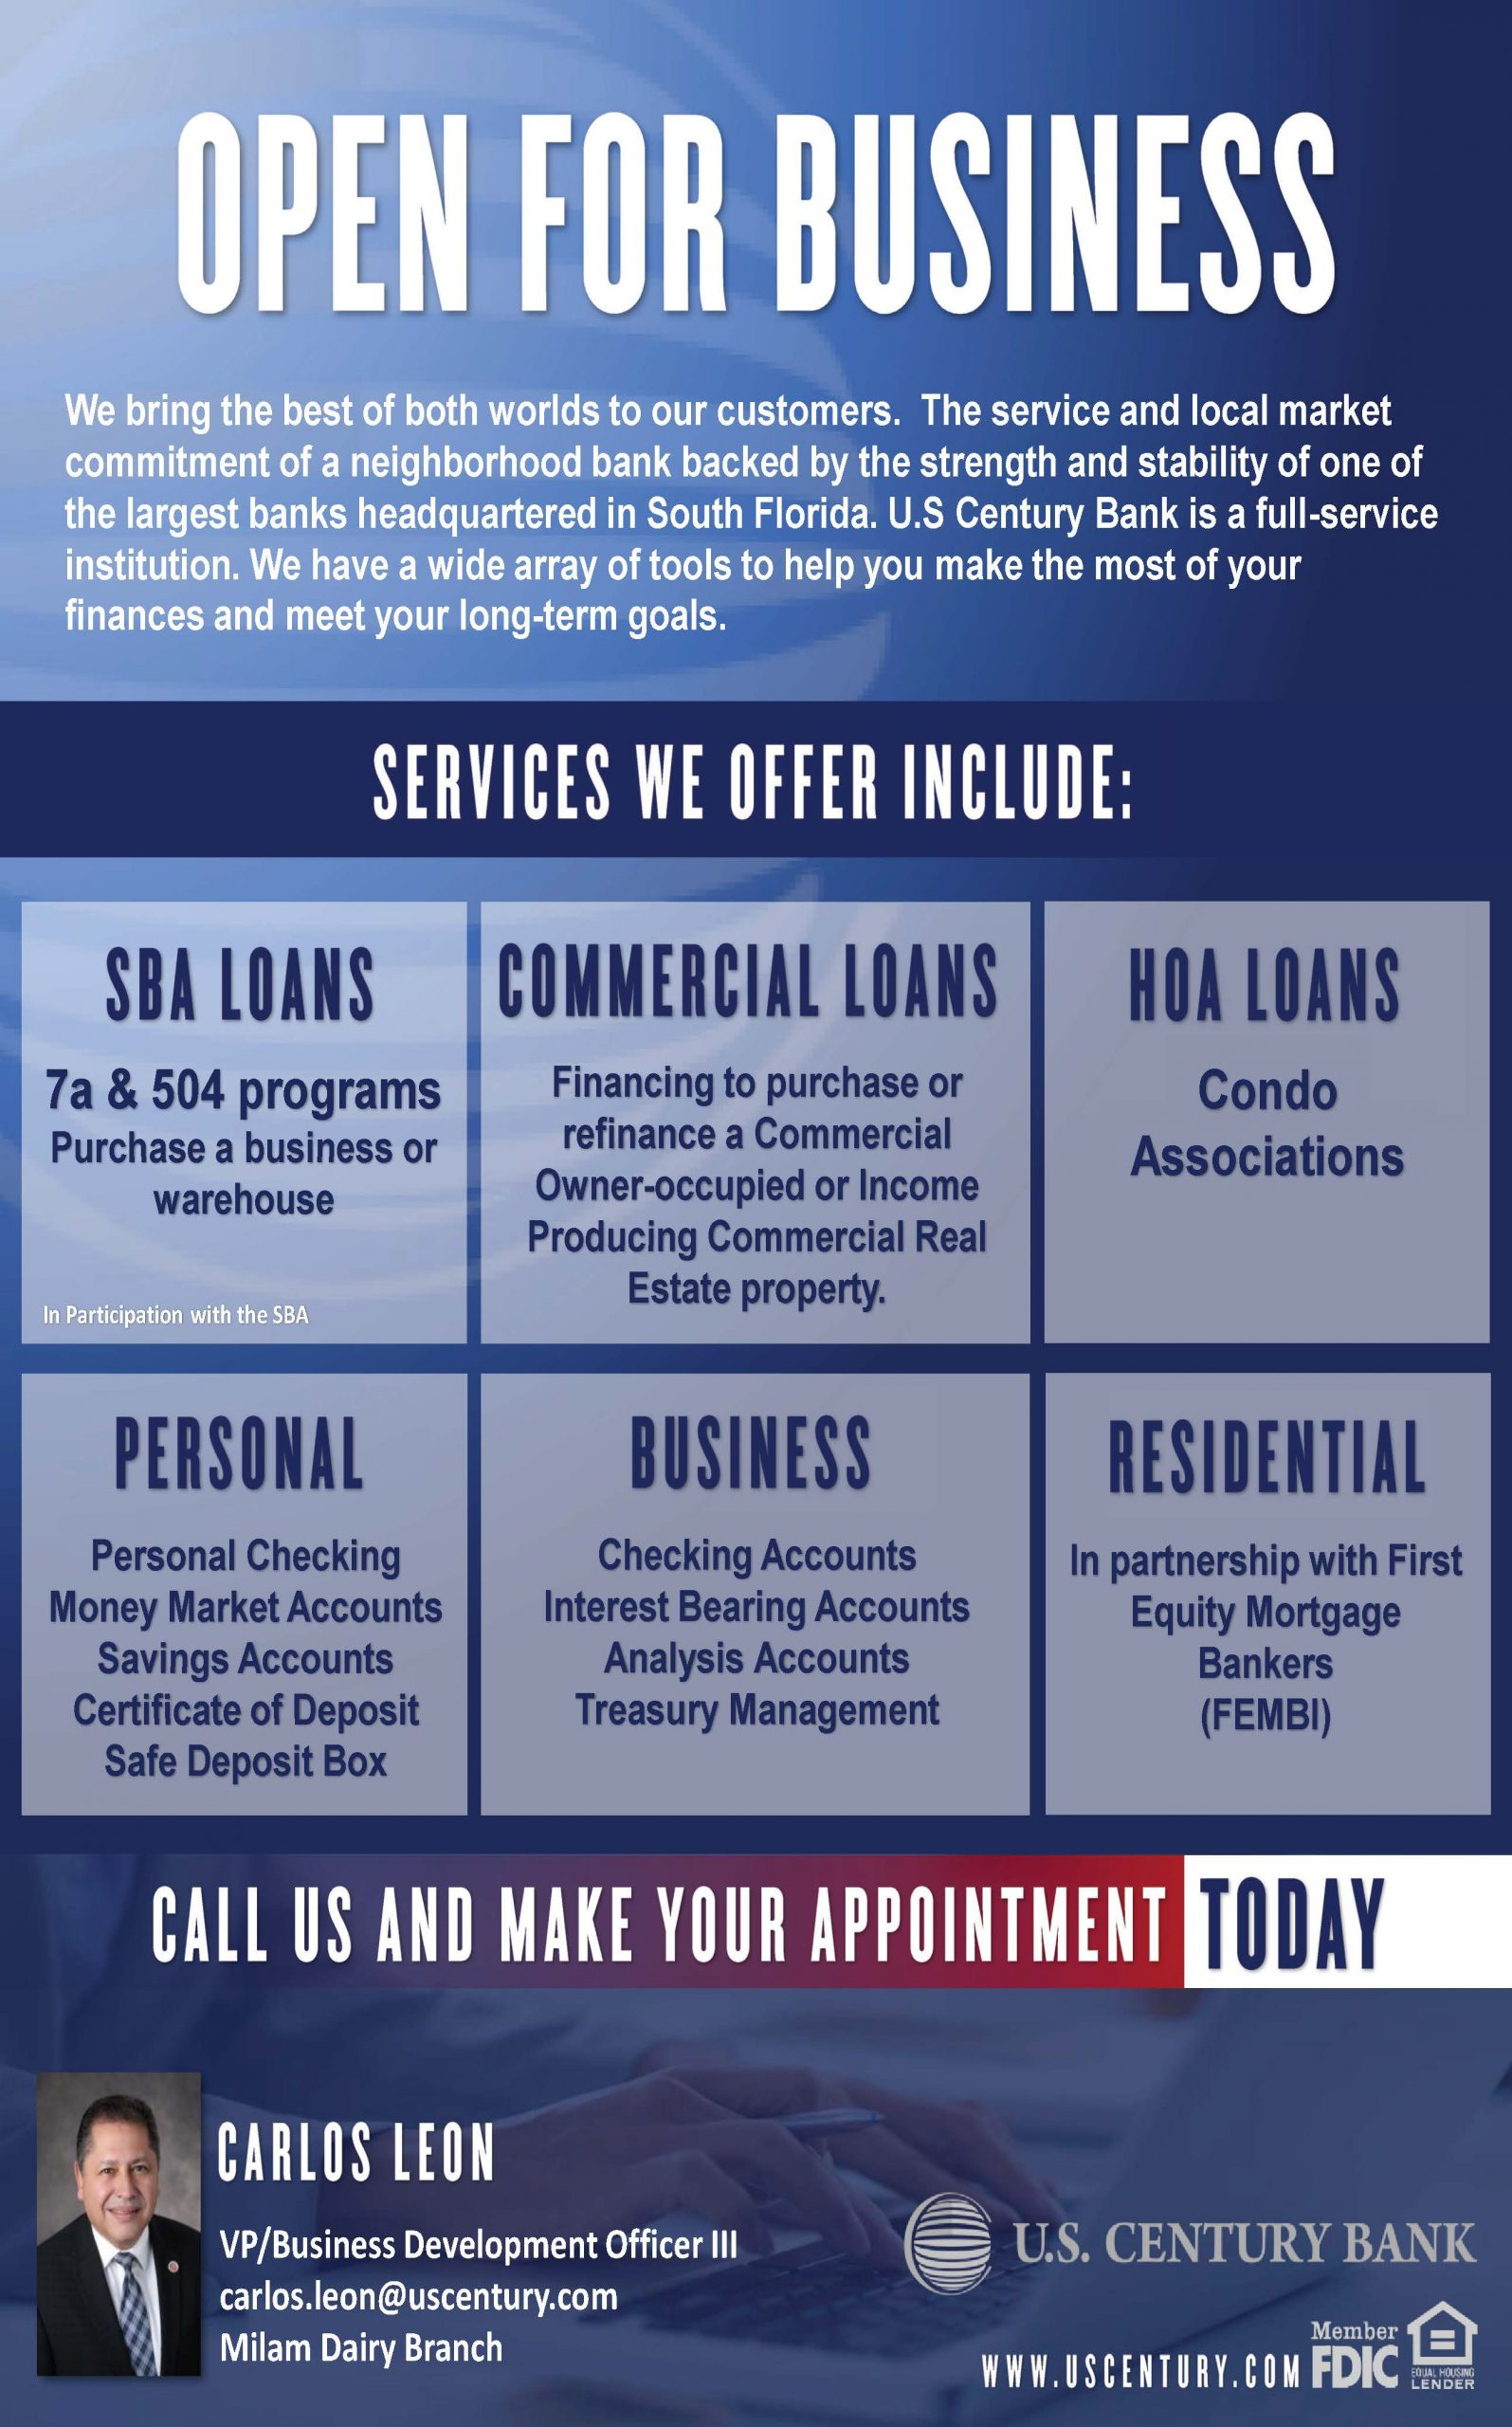 U.S. Century Bank Open for Business Doral Chamber of Commerce Trustee Member.